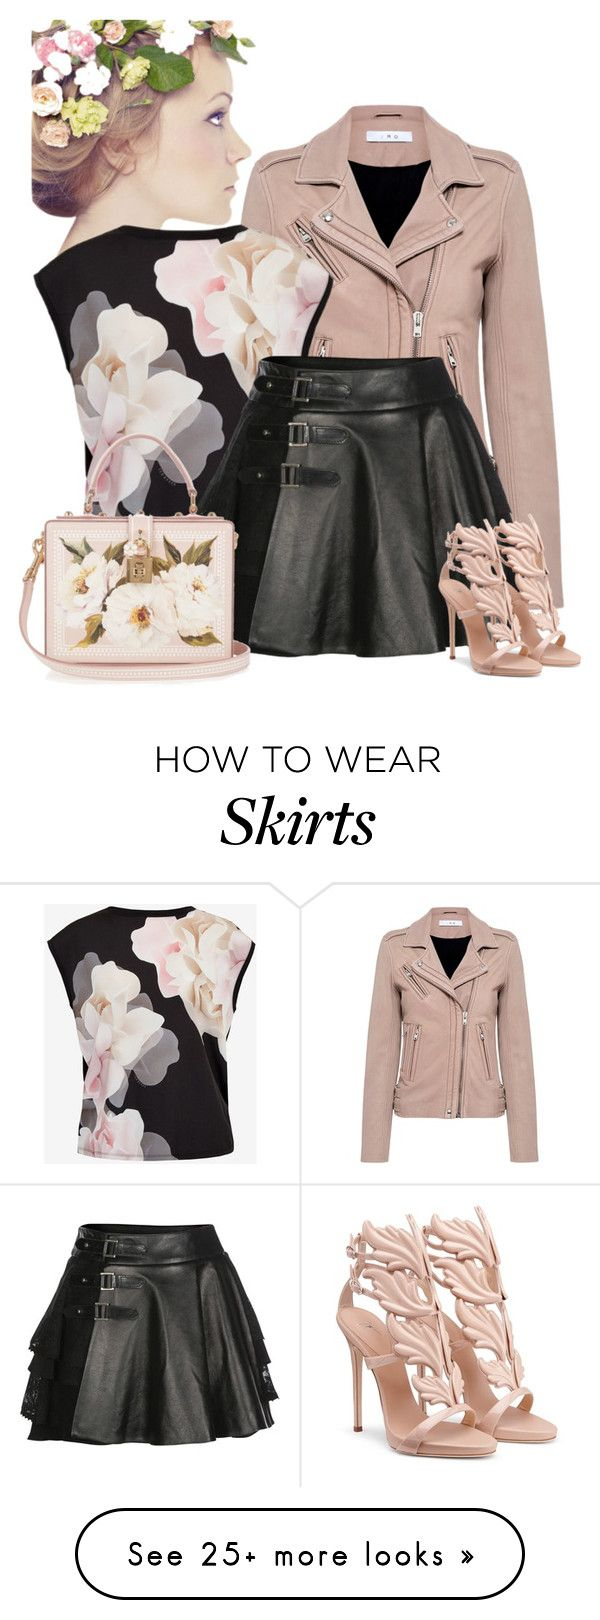 """""""Blush"""" by artistkarstenmouras on Polyvore featuring IRO, Ted Baker, Mairi Mcdonald and Dolce&Gabbana"""